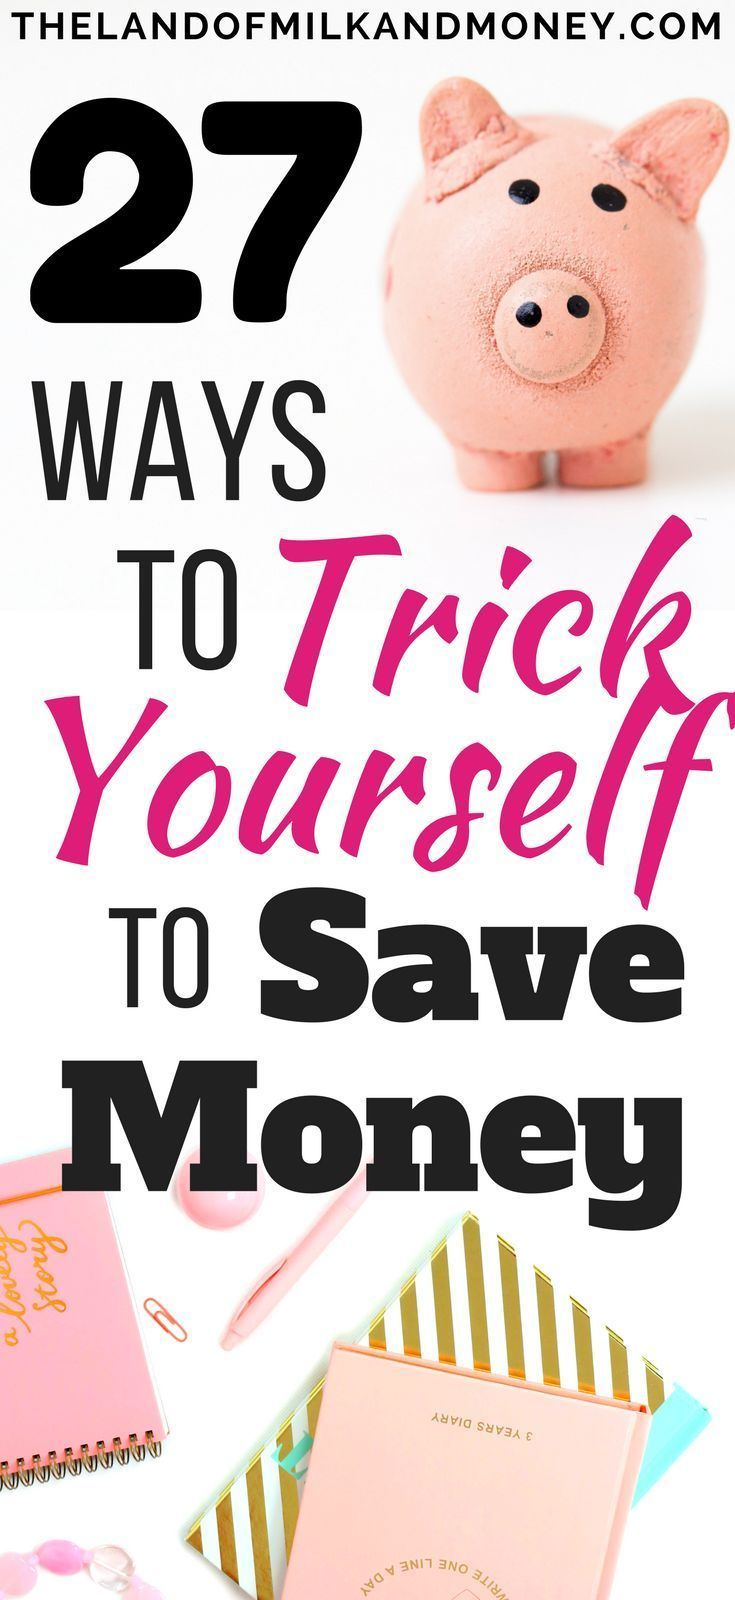 12 best how to succeed in ap us history images on pinterest 27 ways to trick yourself to save money fandeluxe Image collections